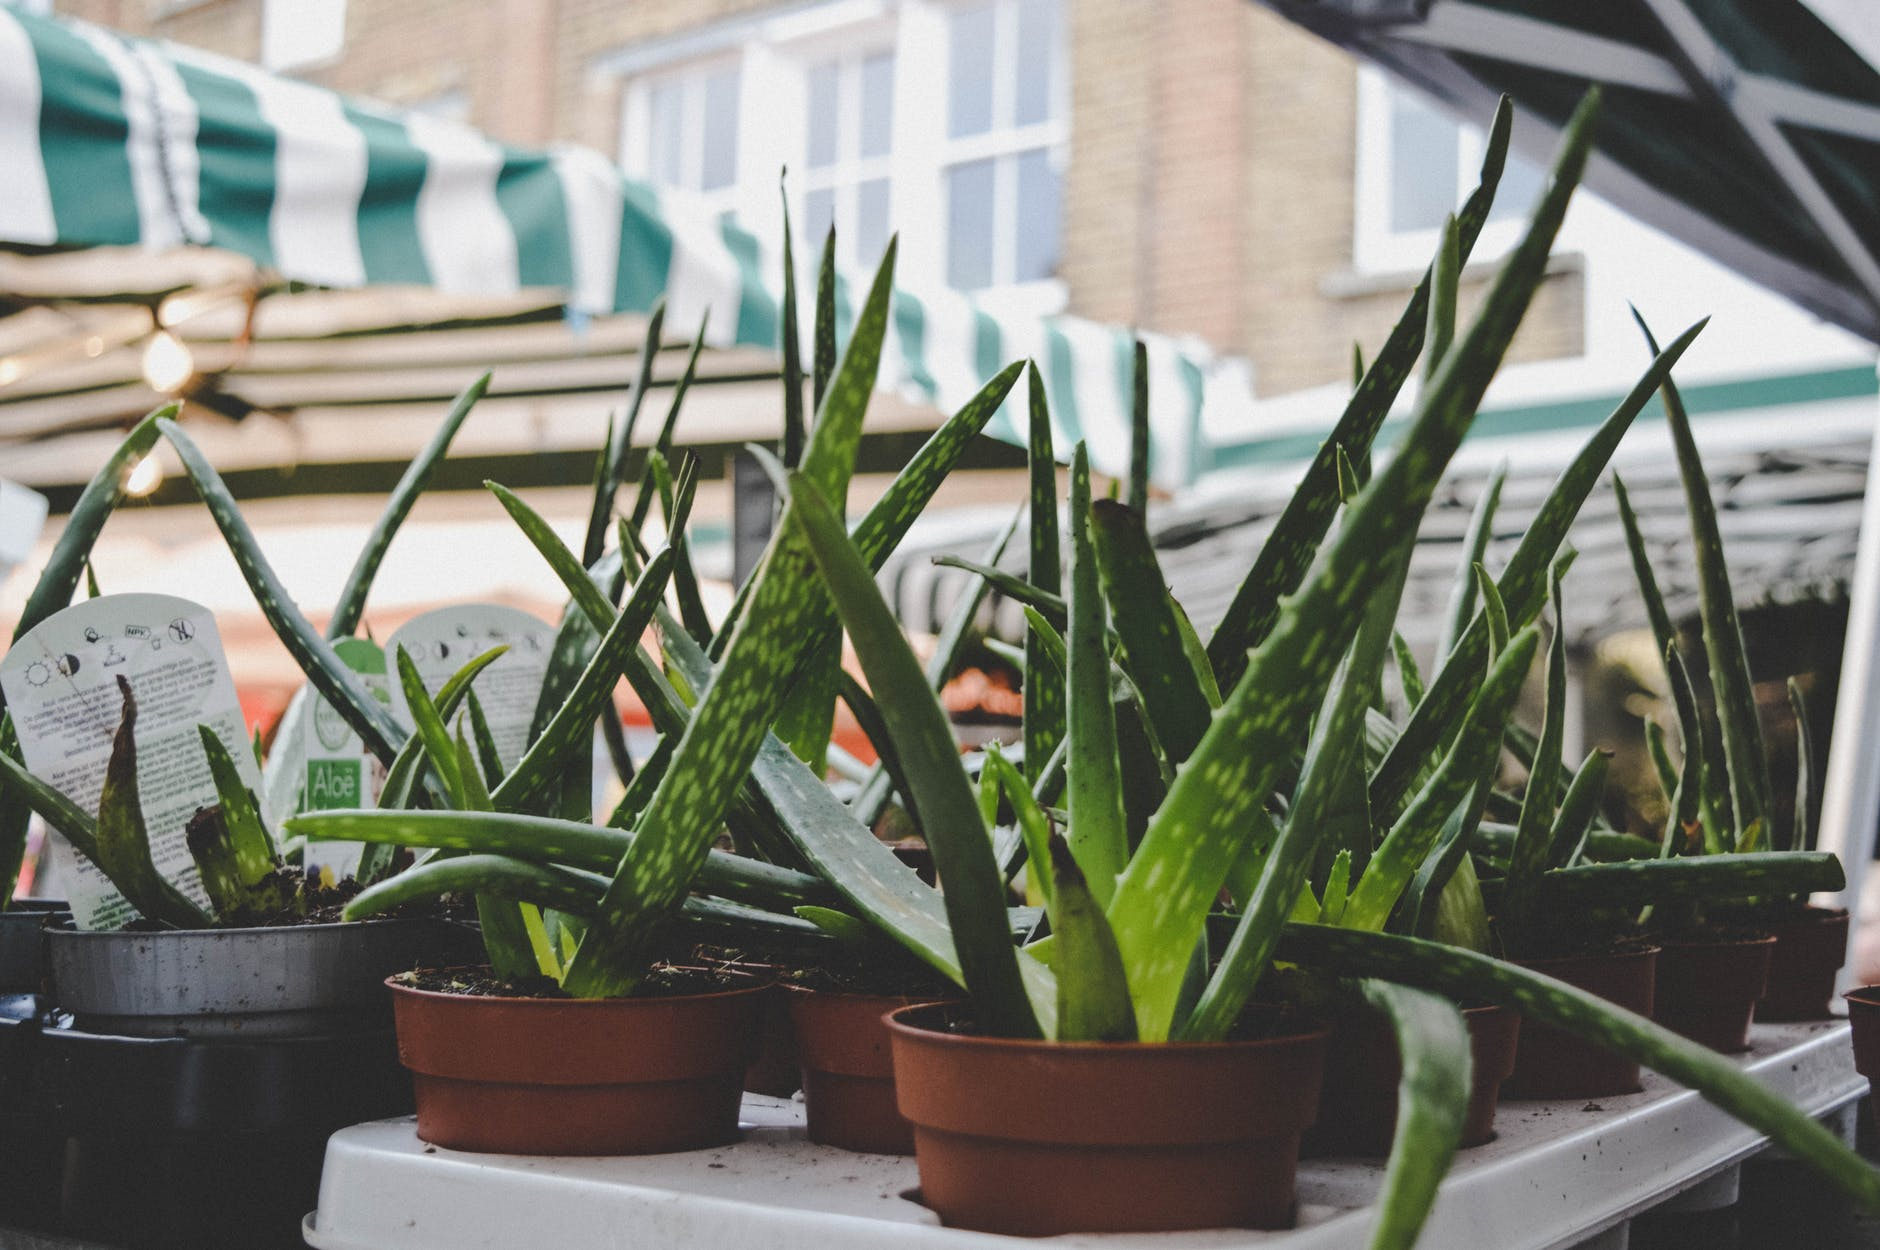 Lots of Aloe Vera Plants place in Pots on the balcony.